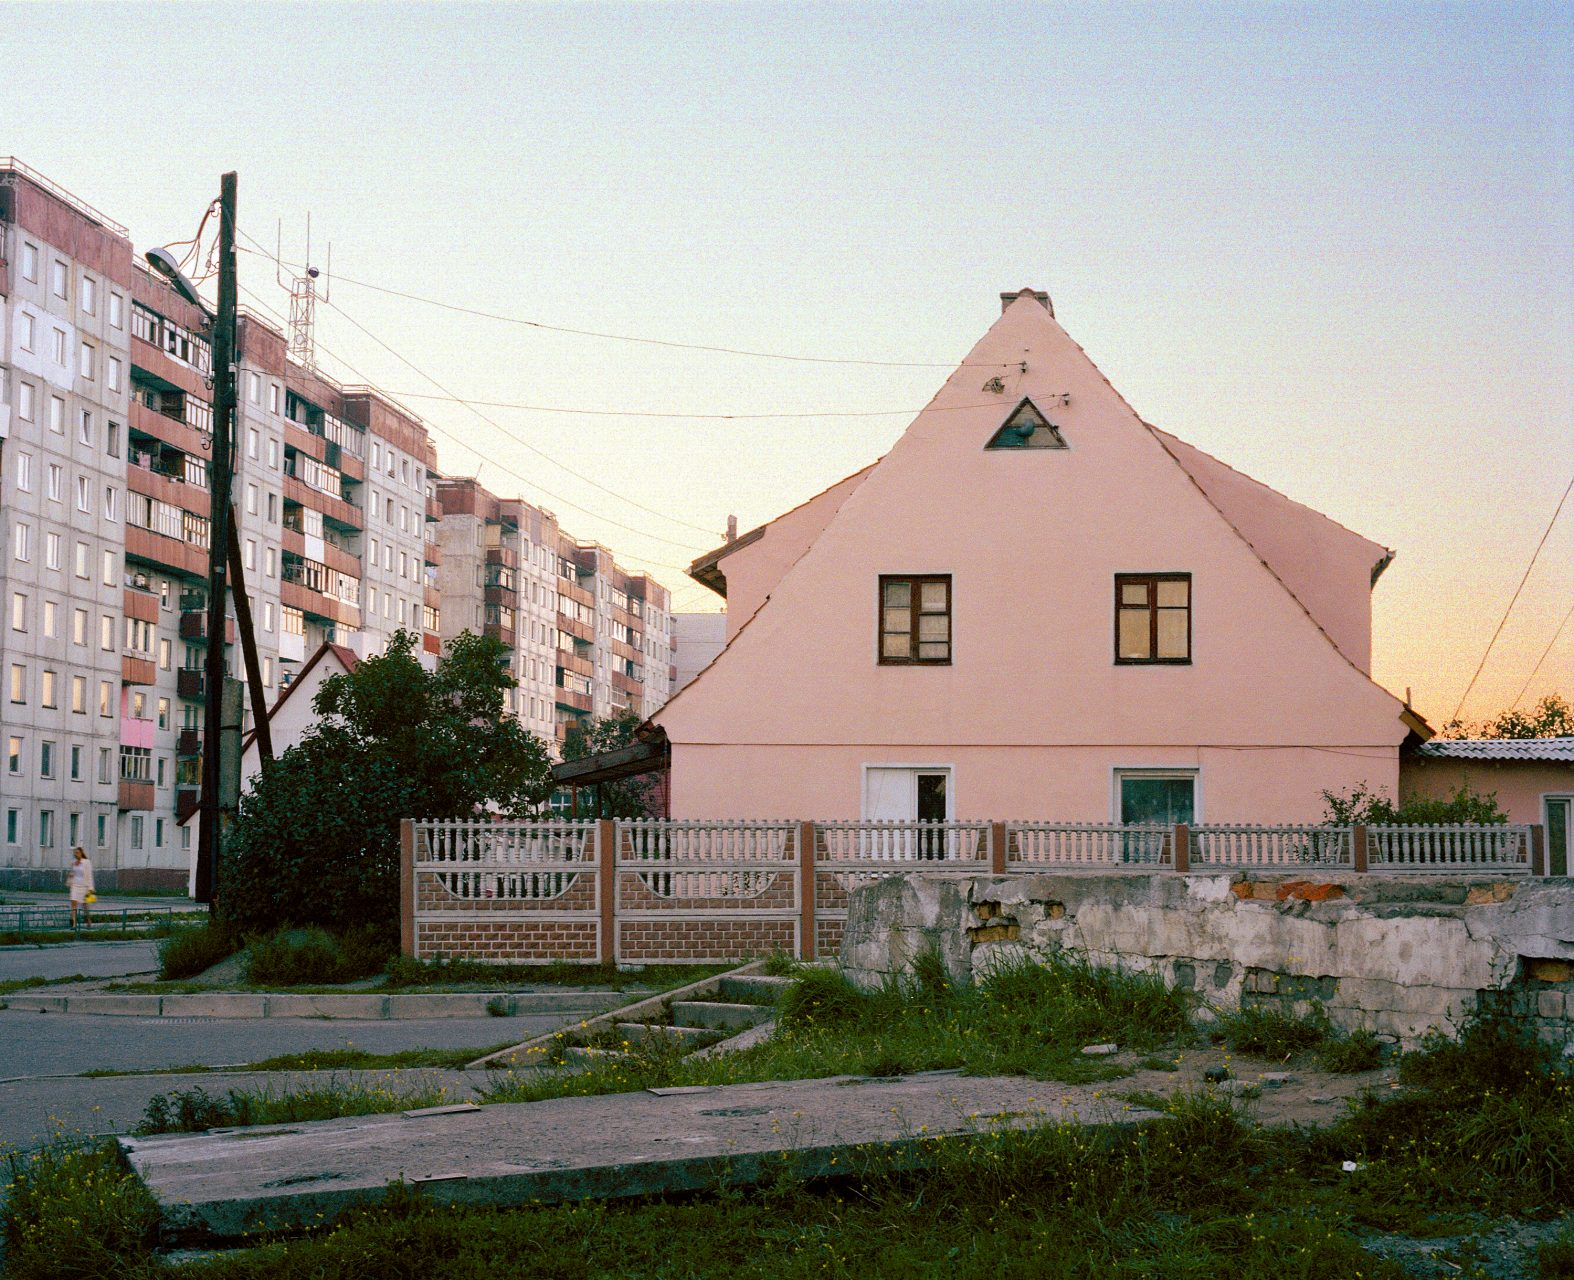 Baltiysk #17, c-print on aluminium, 100 x 125 cm, 2005